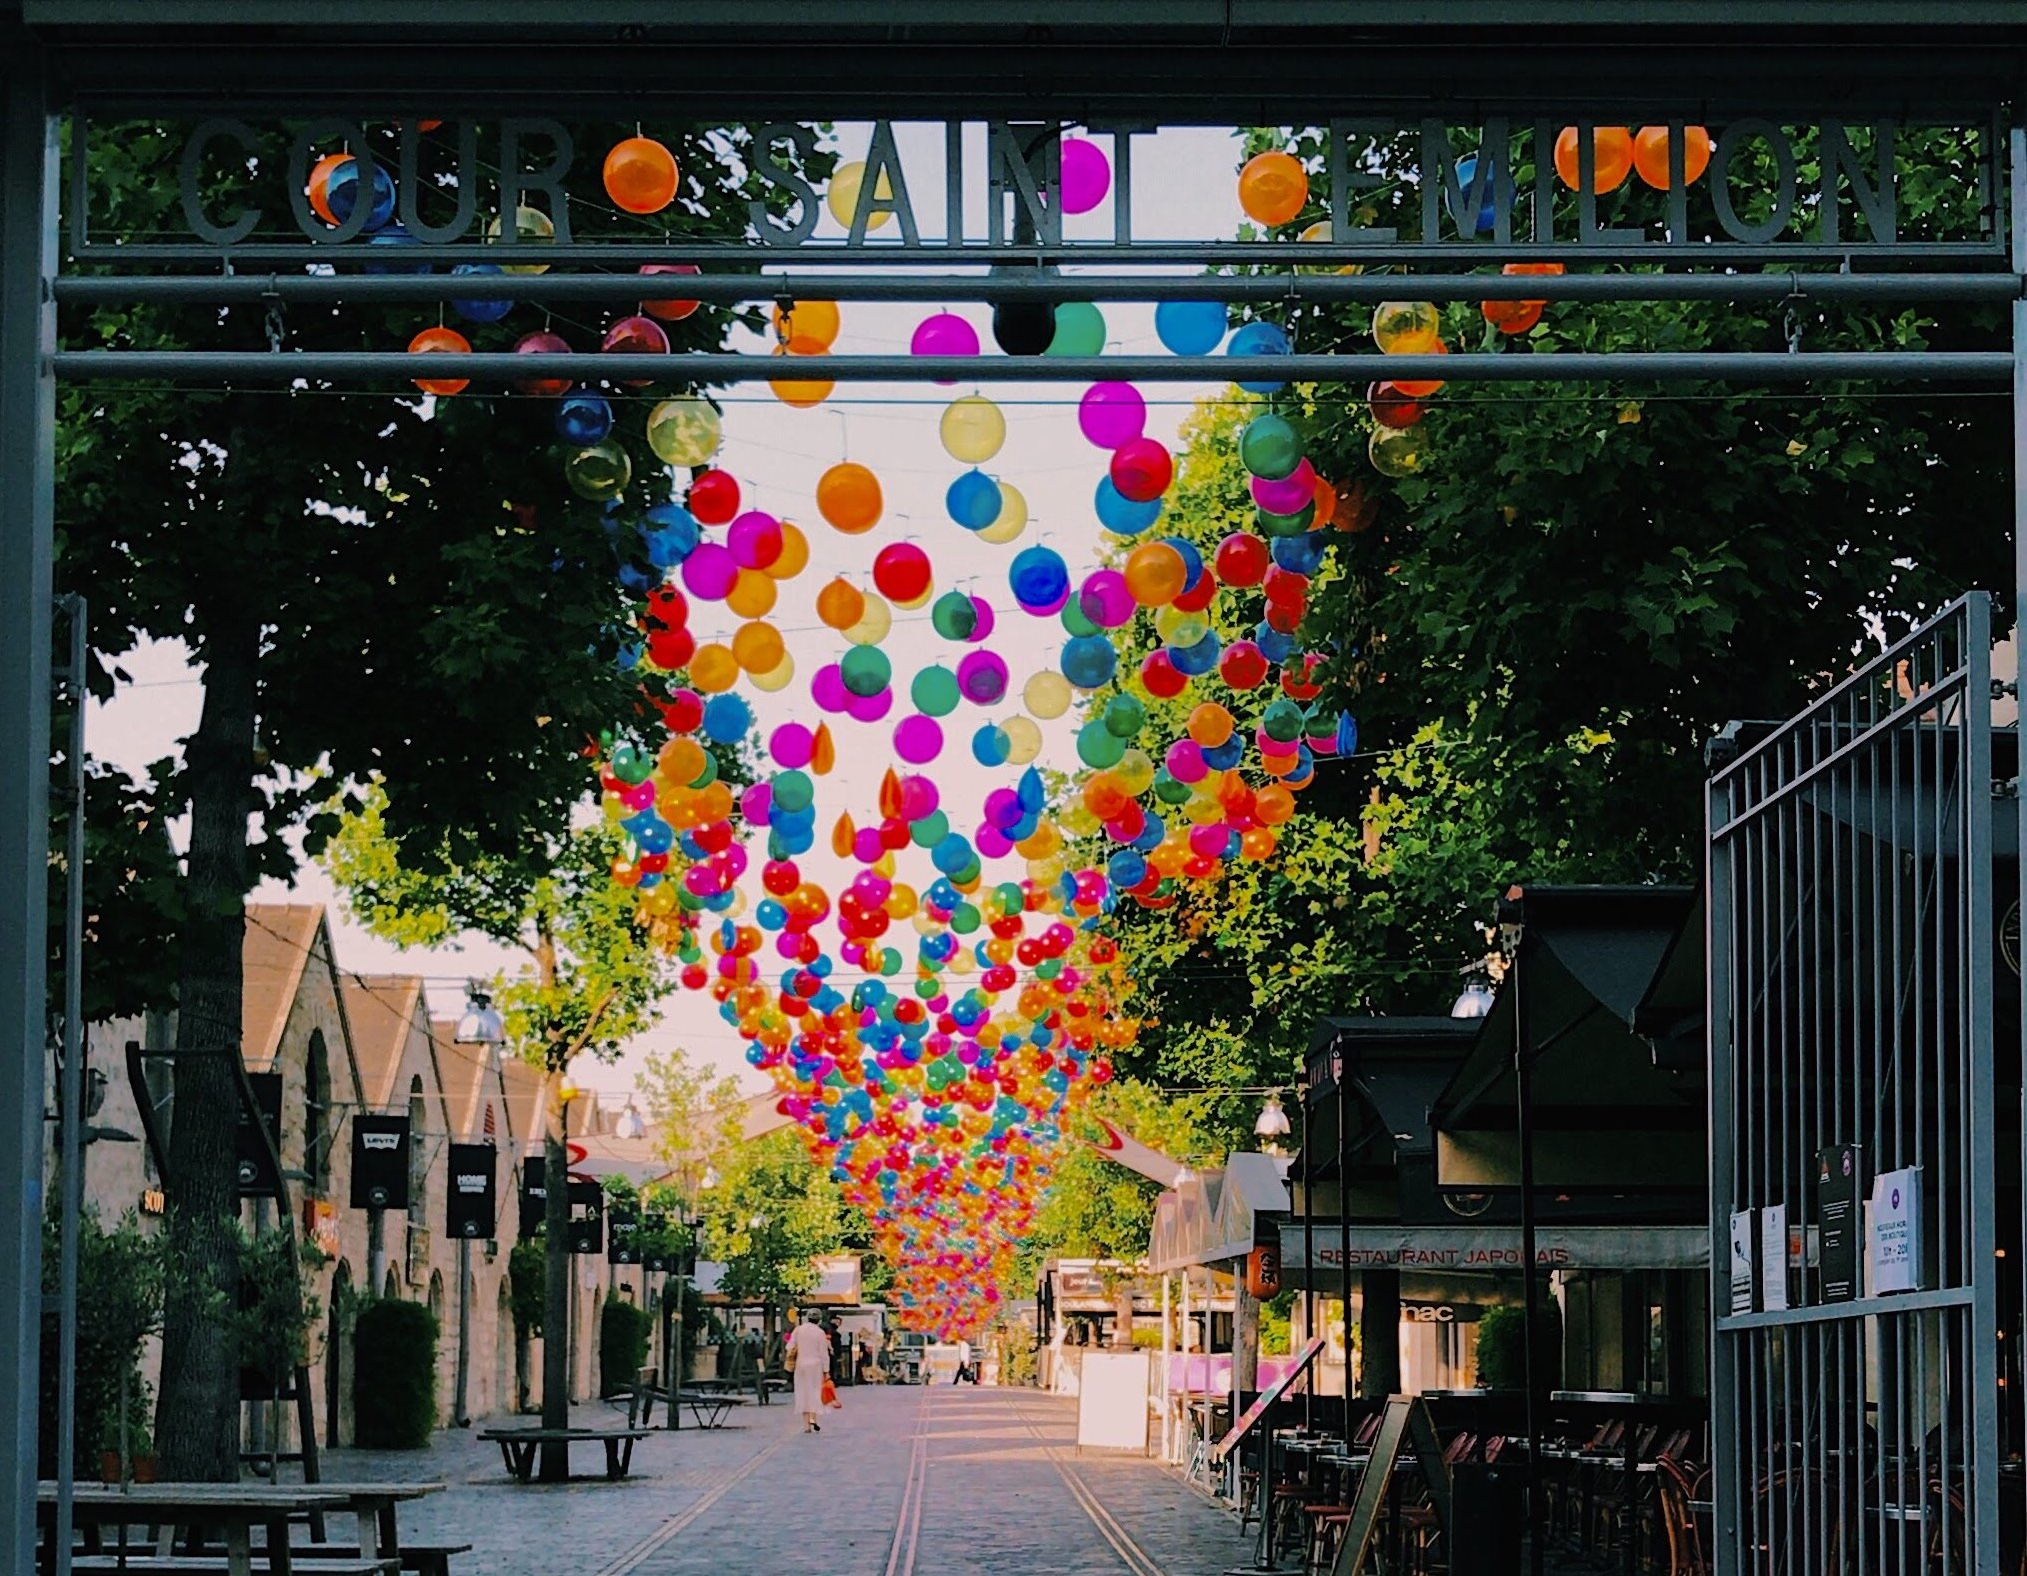 Bercy Village recouverts de ballons multicolores